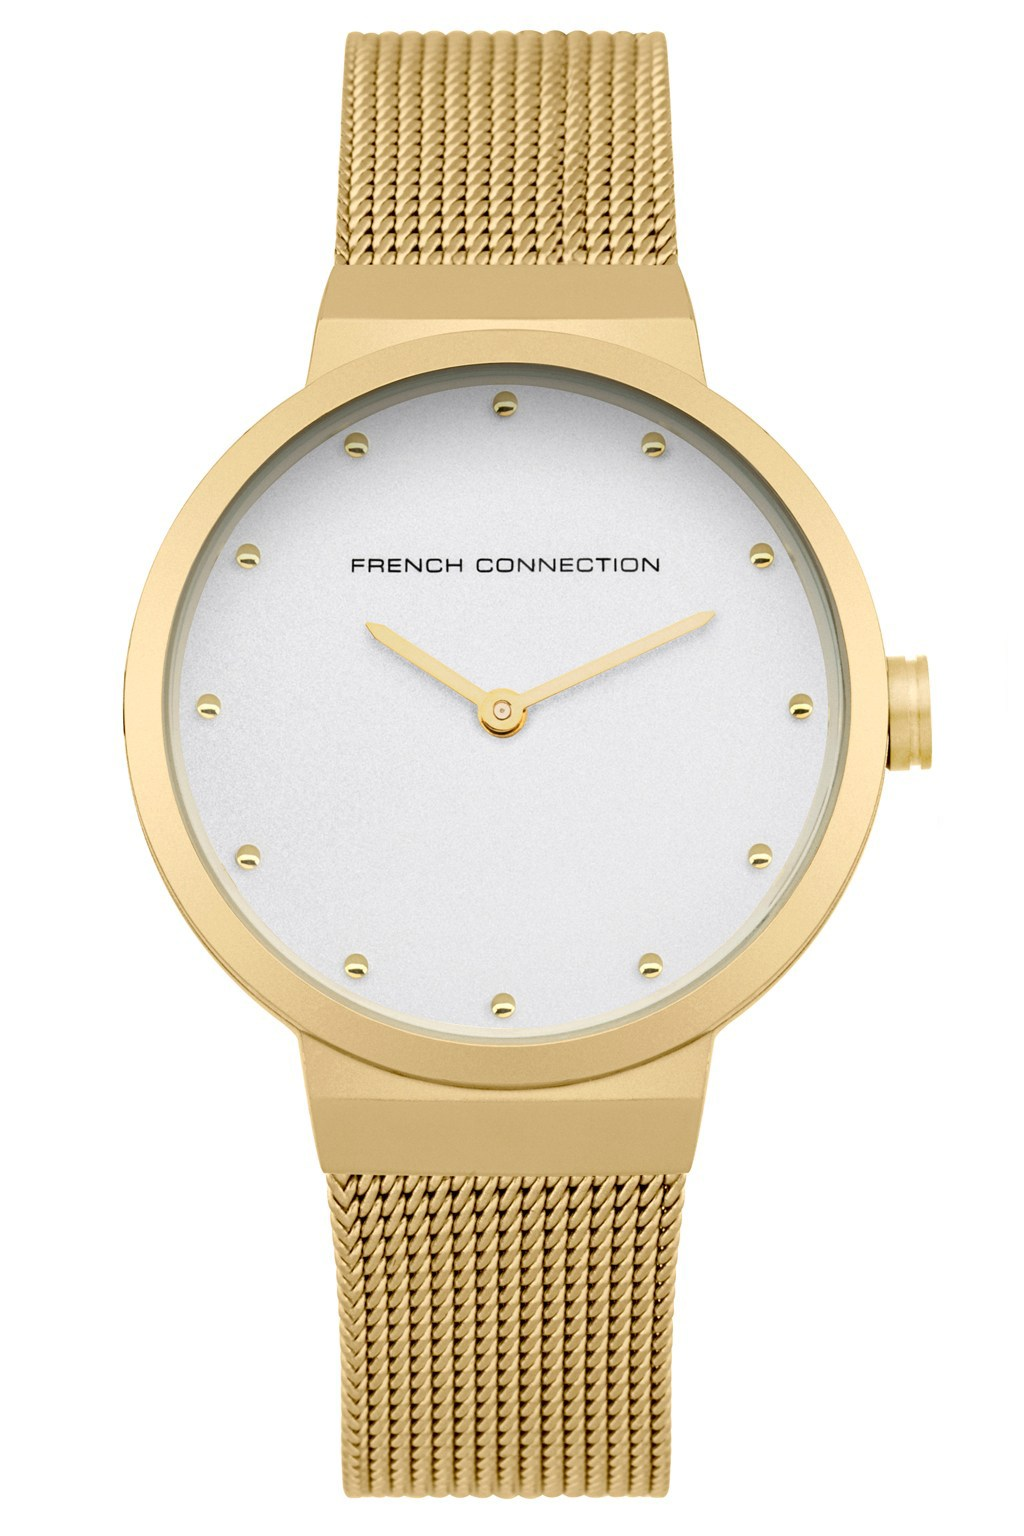 Gold mesh strap watch watches french connection for Gold timepieces watch